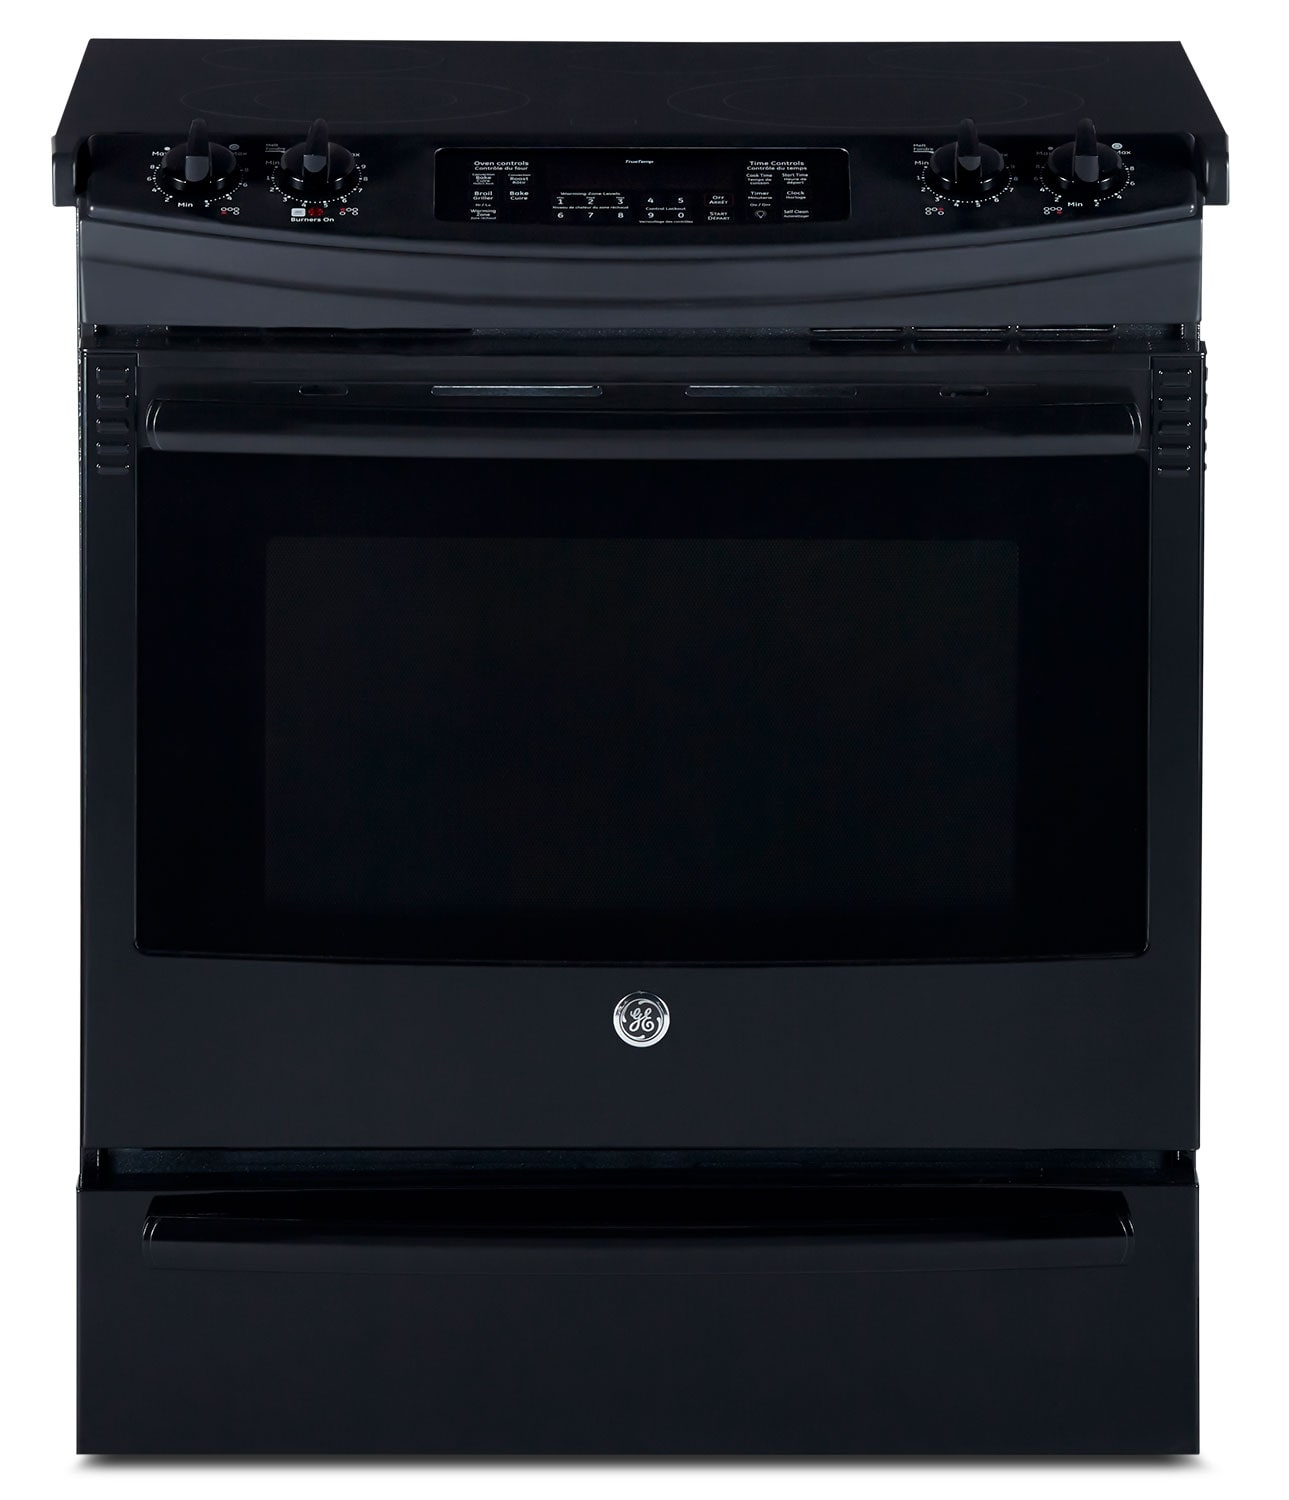 GE Black Slide-In Electric Convection Range (5.2 Cu. Ft.) - JCS860DFBB